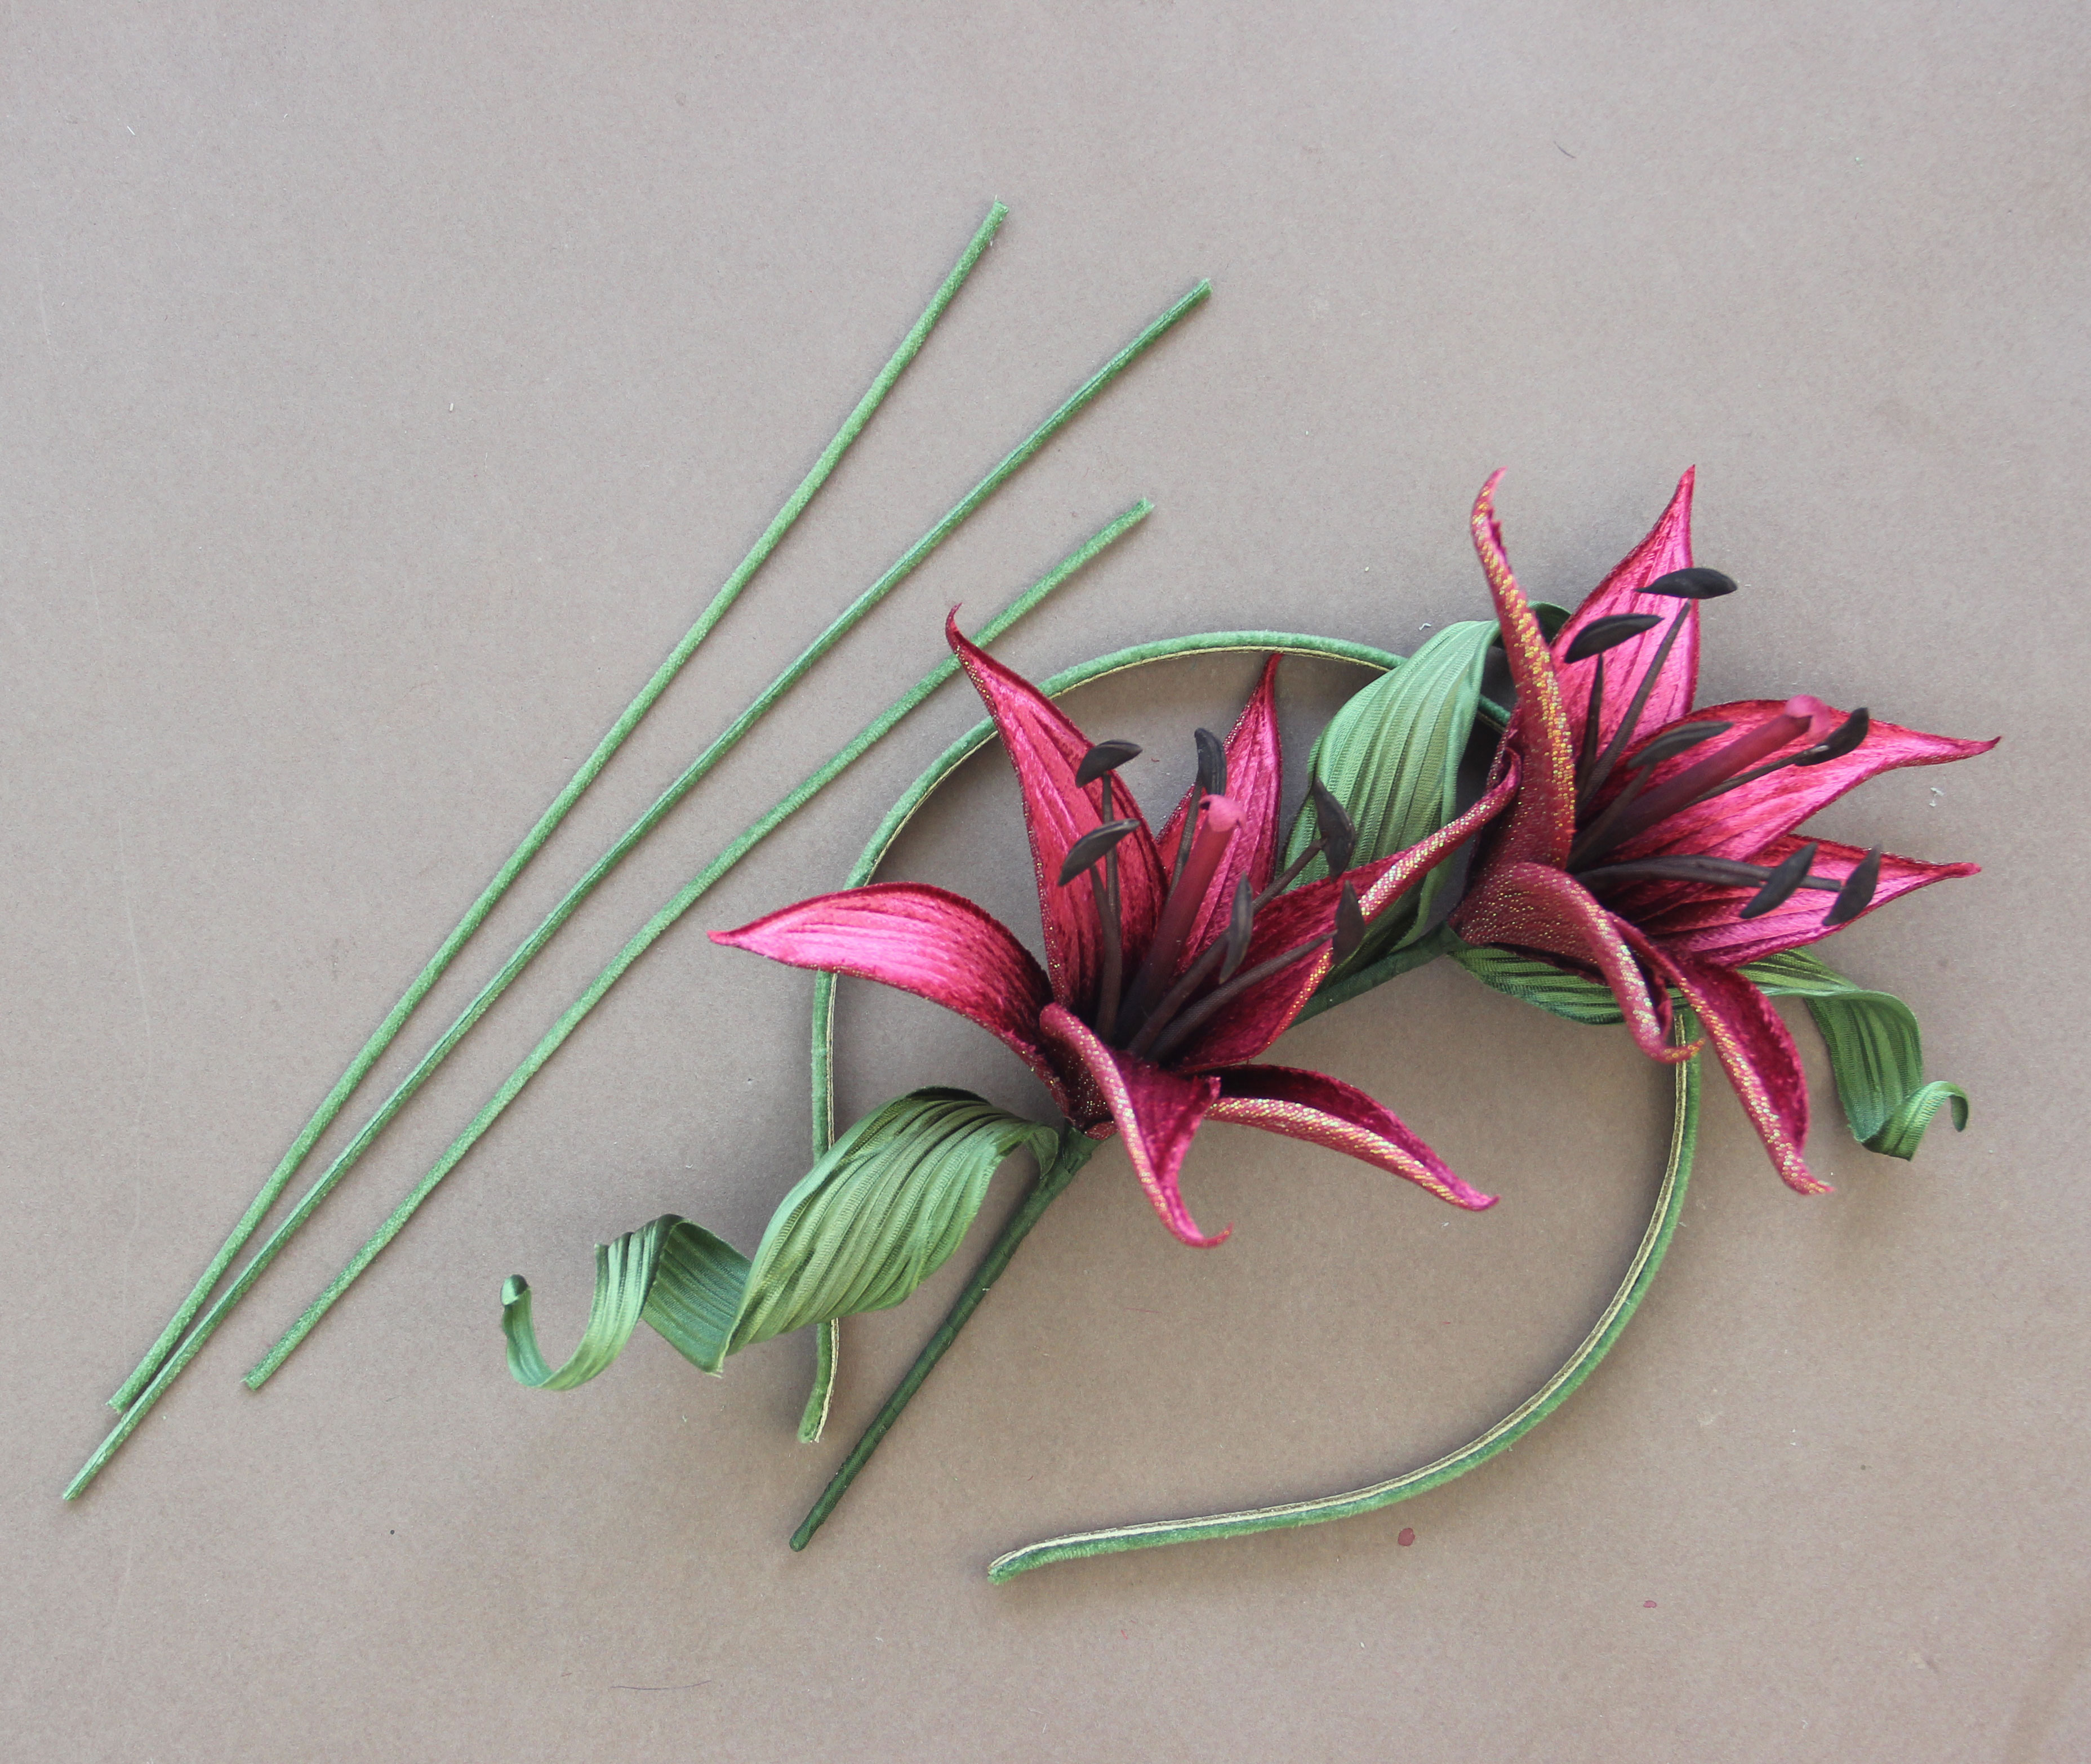 about 3 in across Shirt etc... Scarf Intricate and Classy Hand-Crafted Kanzashi Accessory Flower for Your Hair